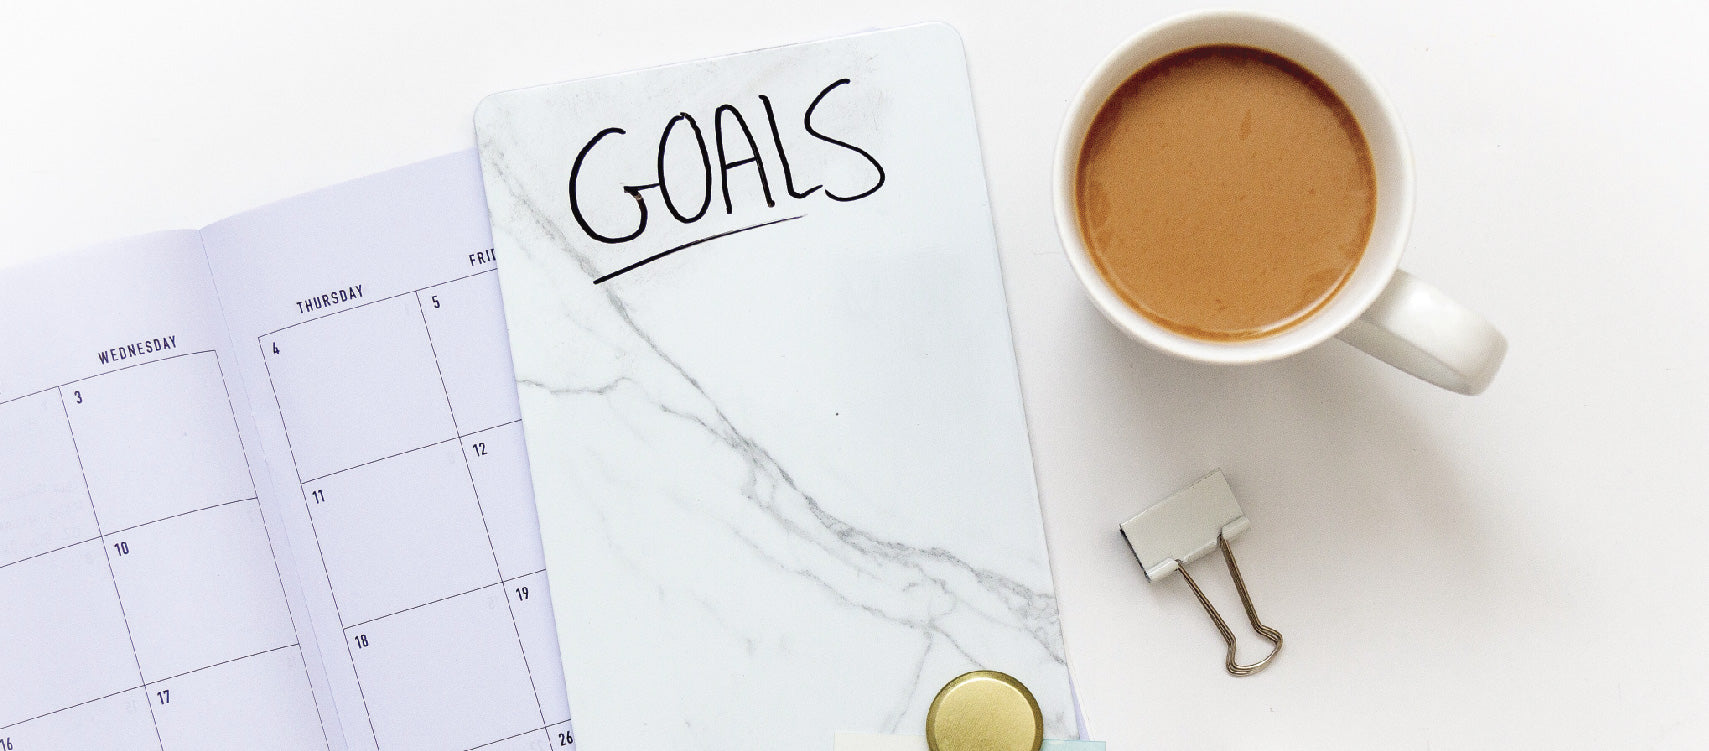 Goal planner with coffee on the side